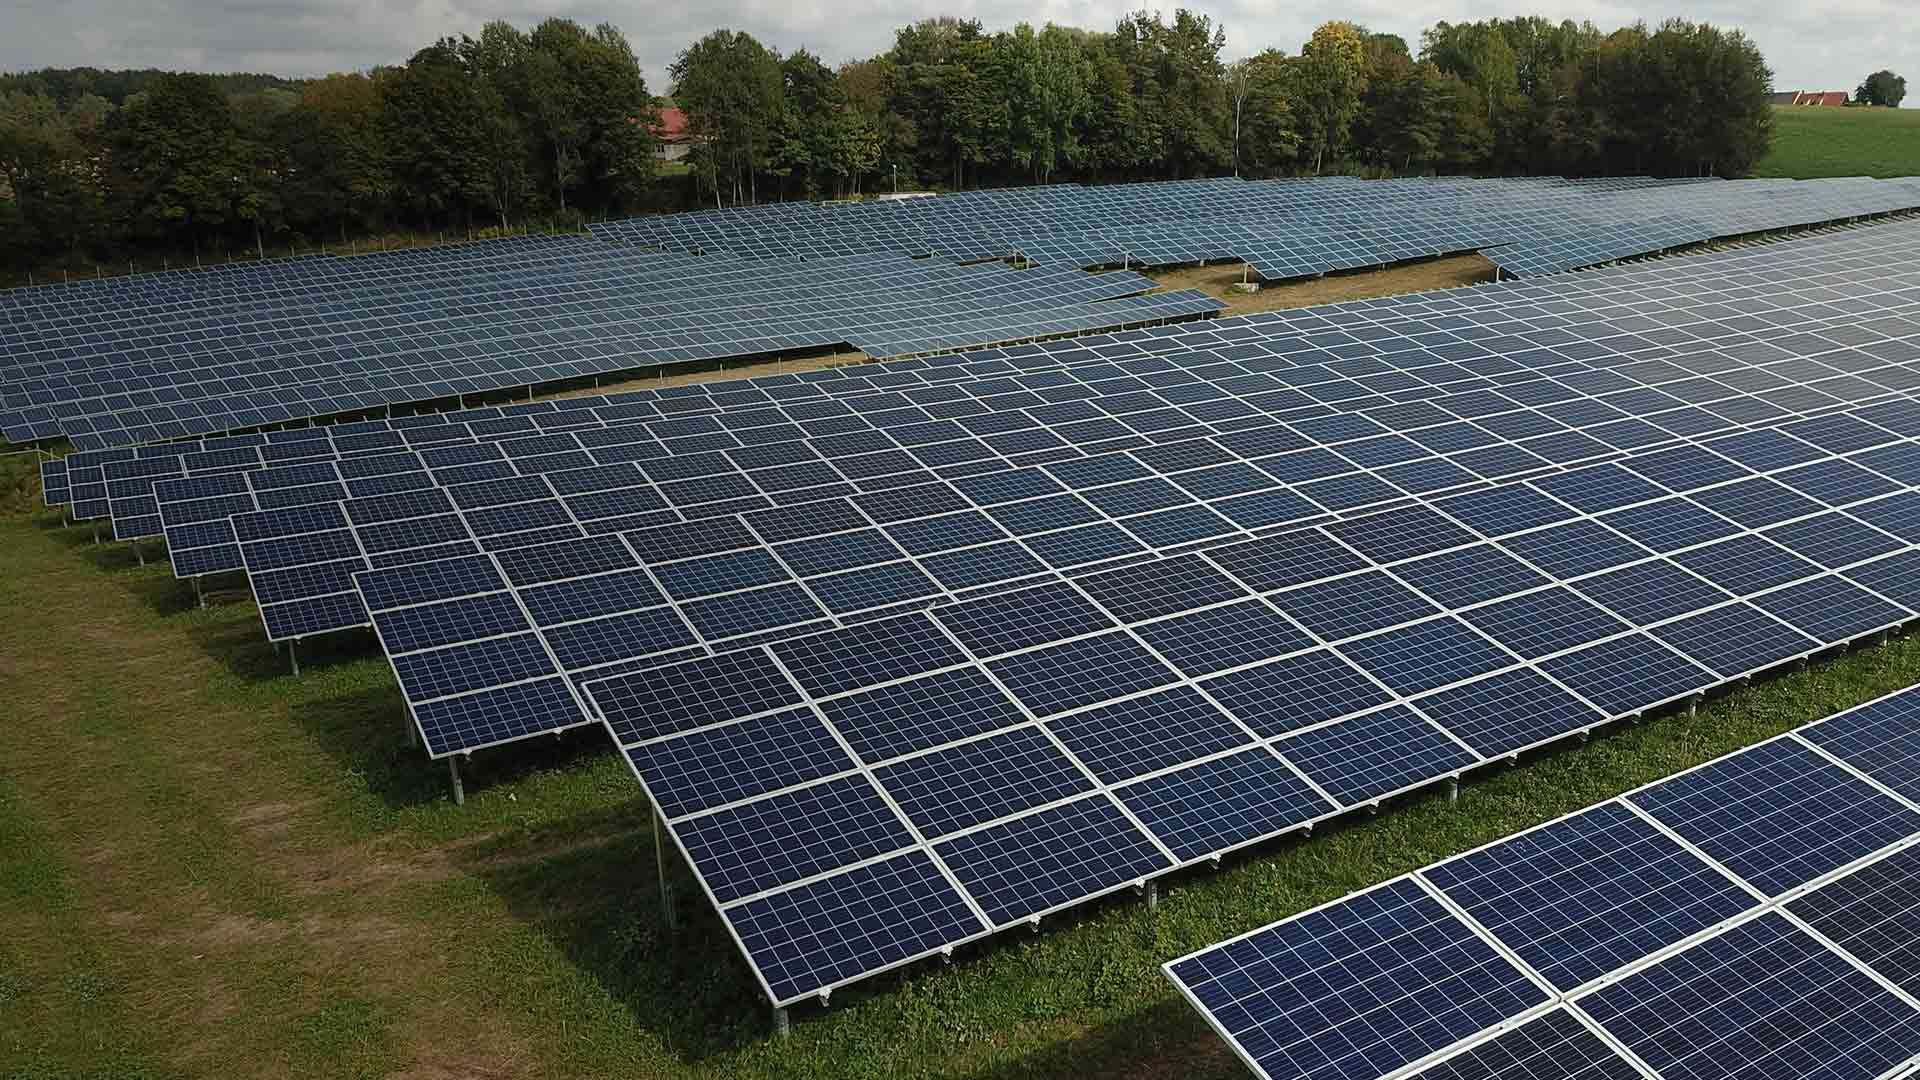 SENOK ENERGY - Solar Power Generation